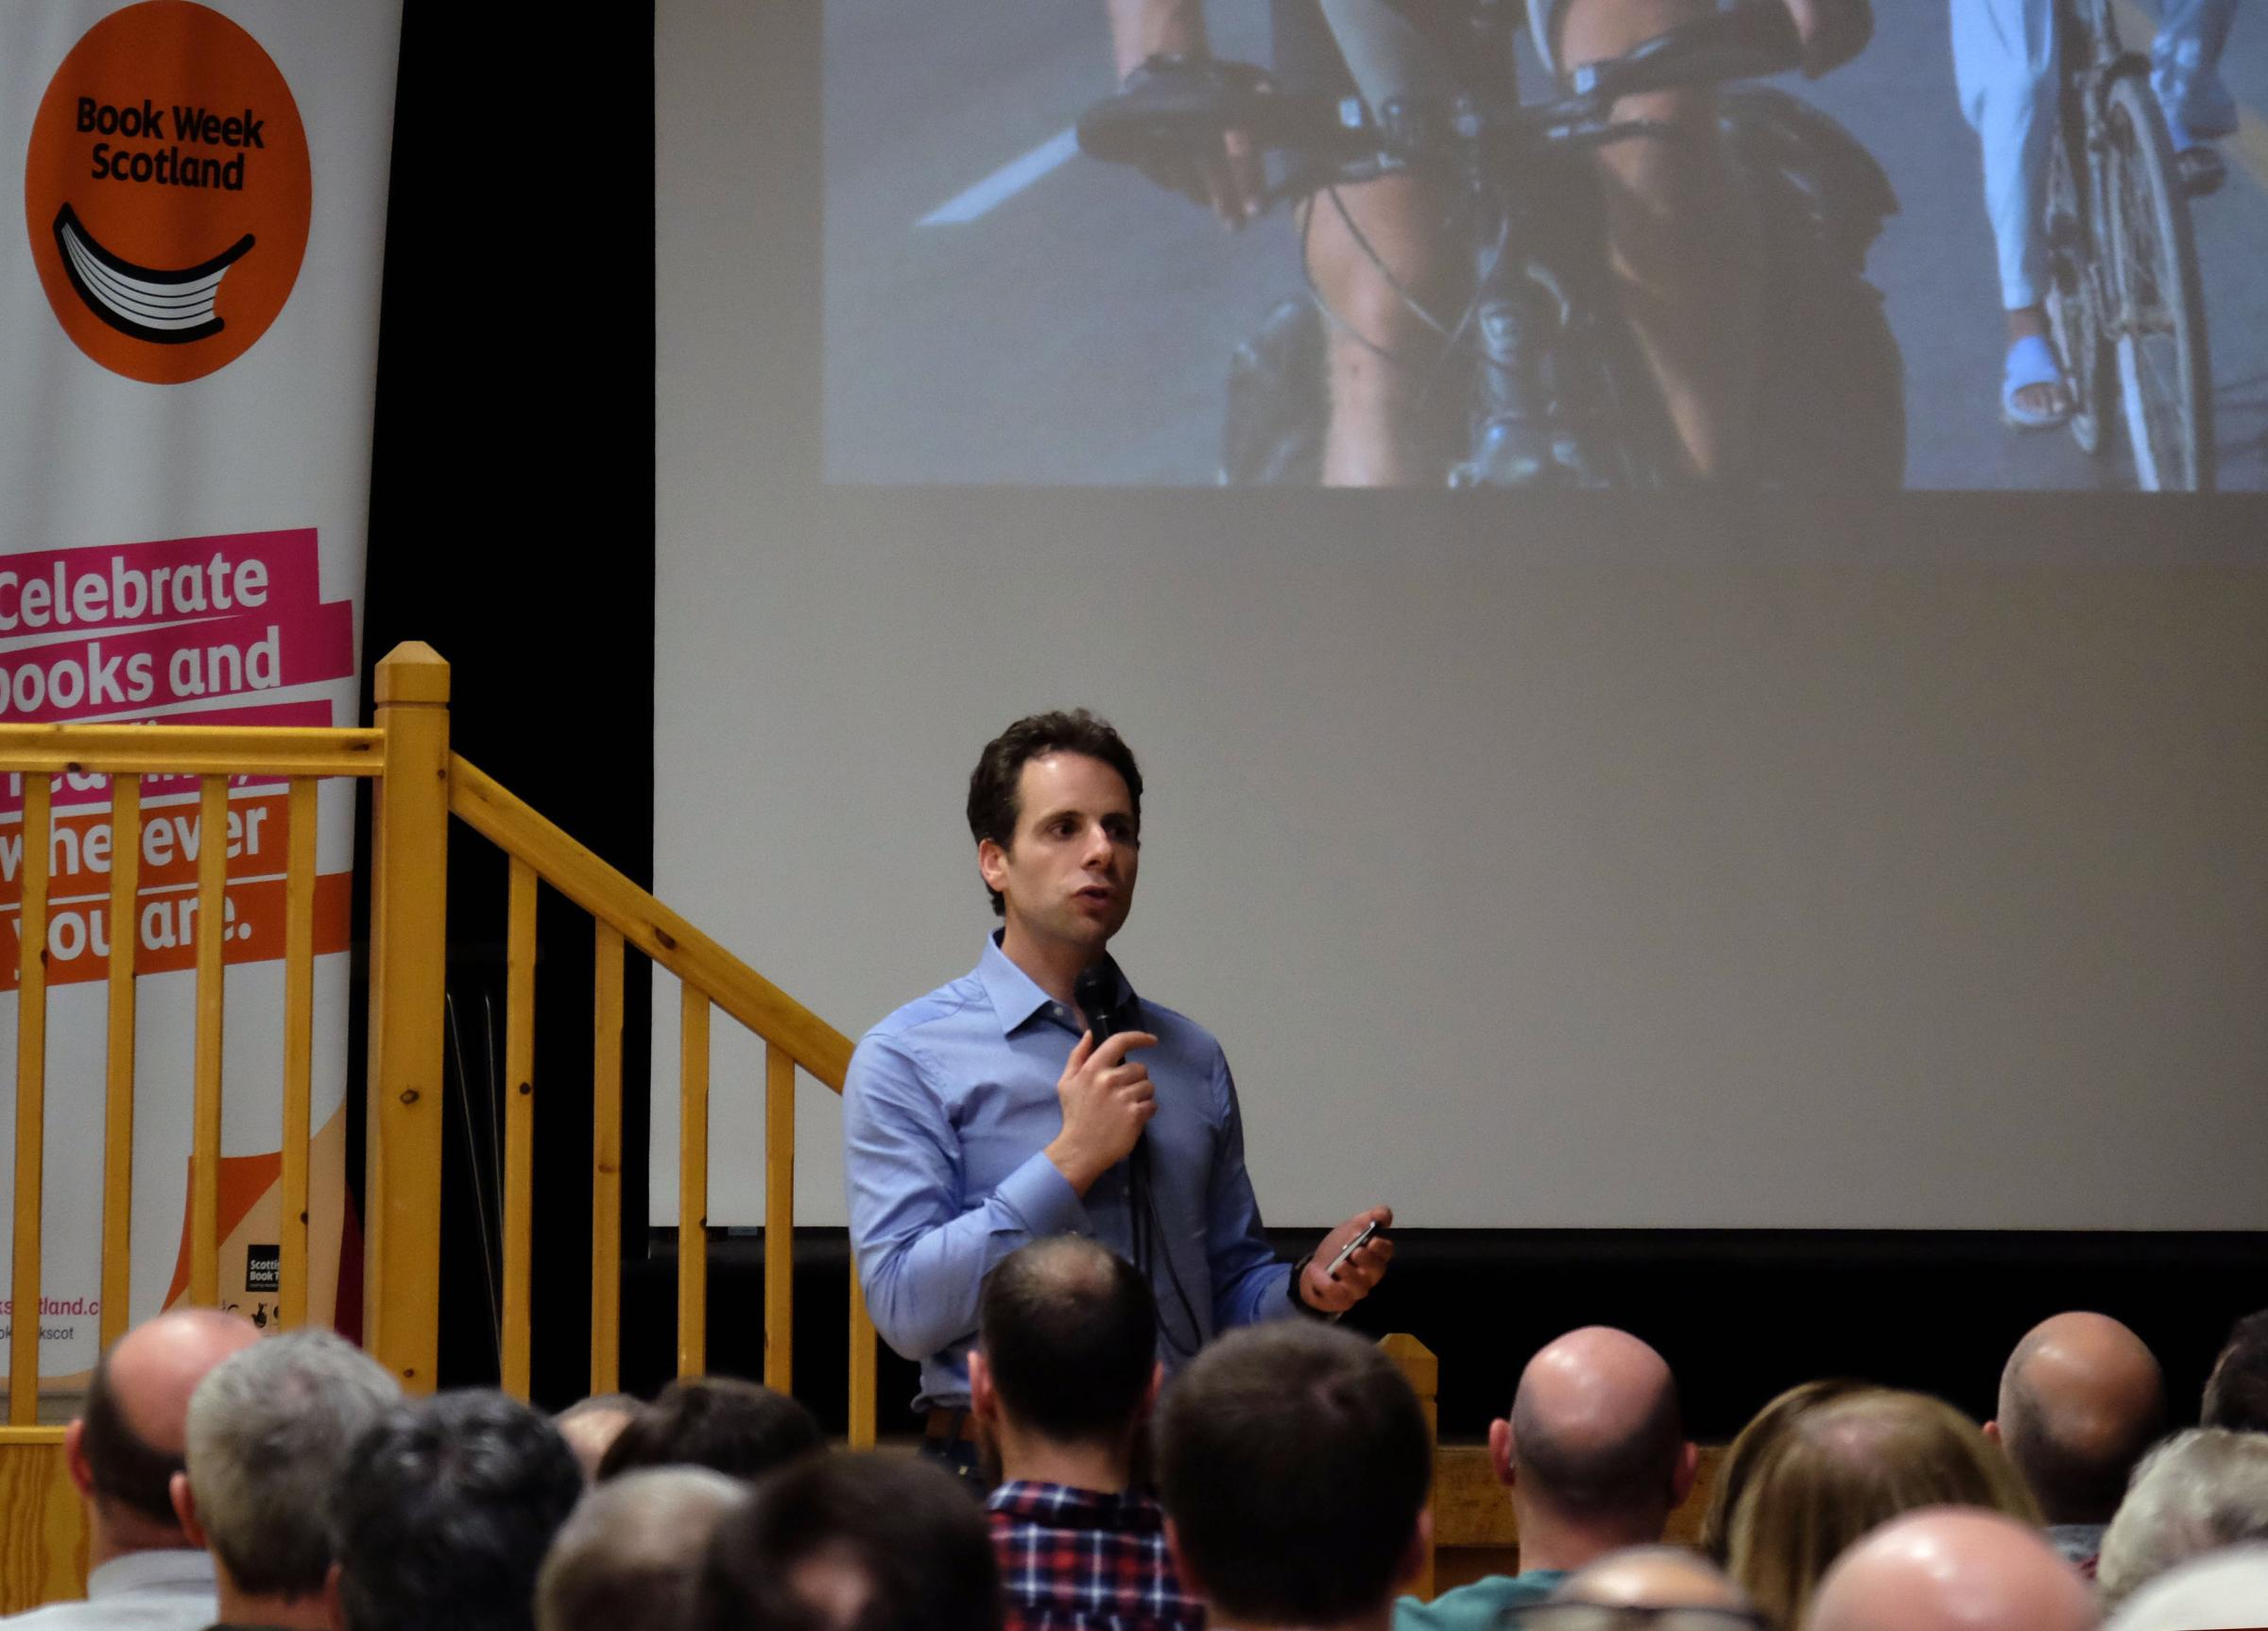 Mark Beaumont delivered a talk at Clarkston Hall